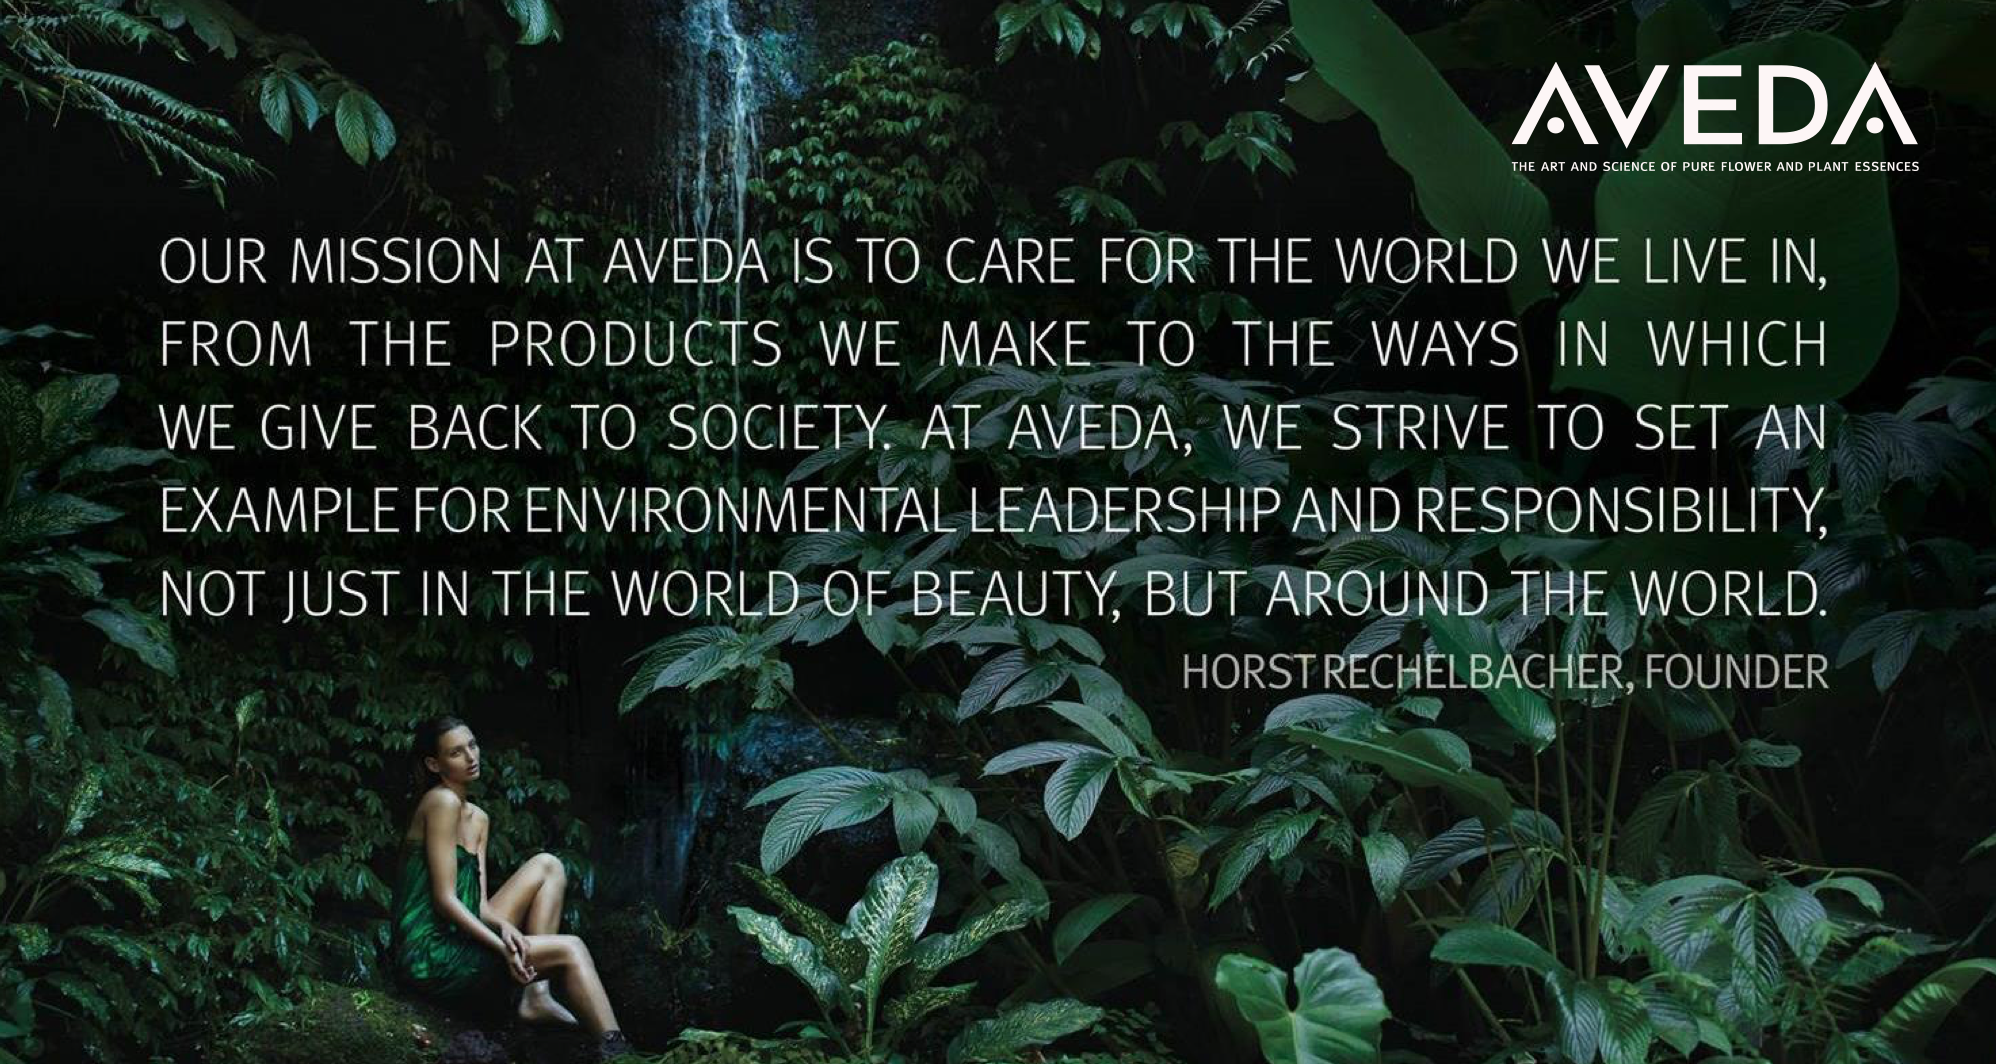 Read AVEDA's Mission Statement